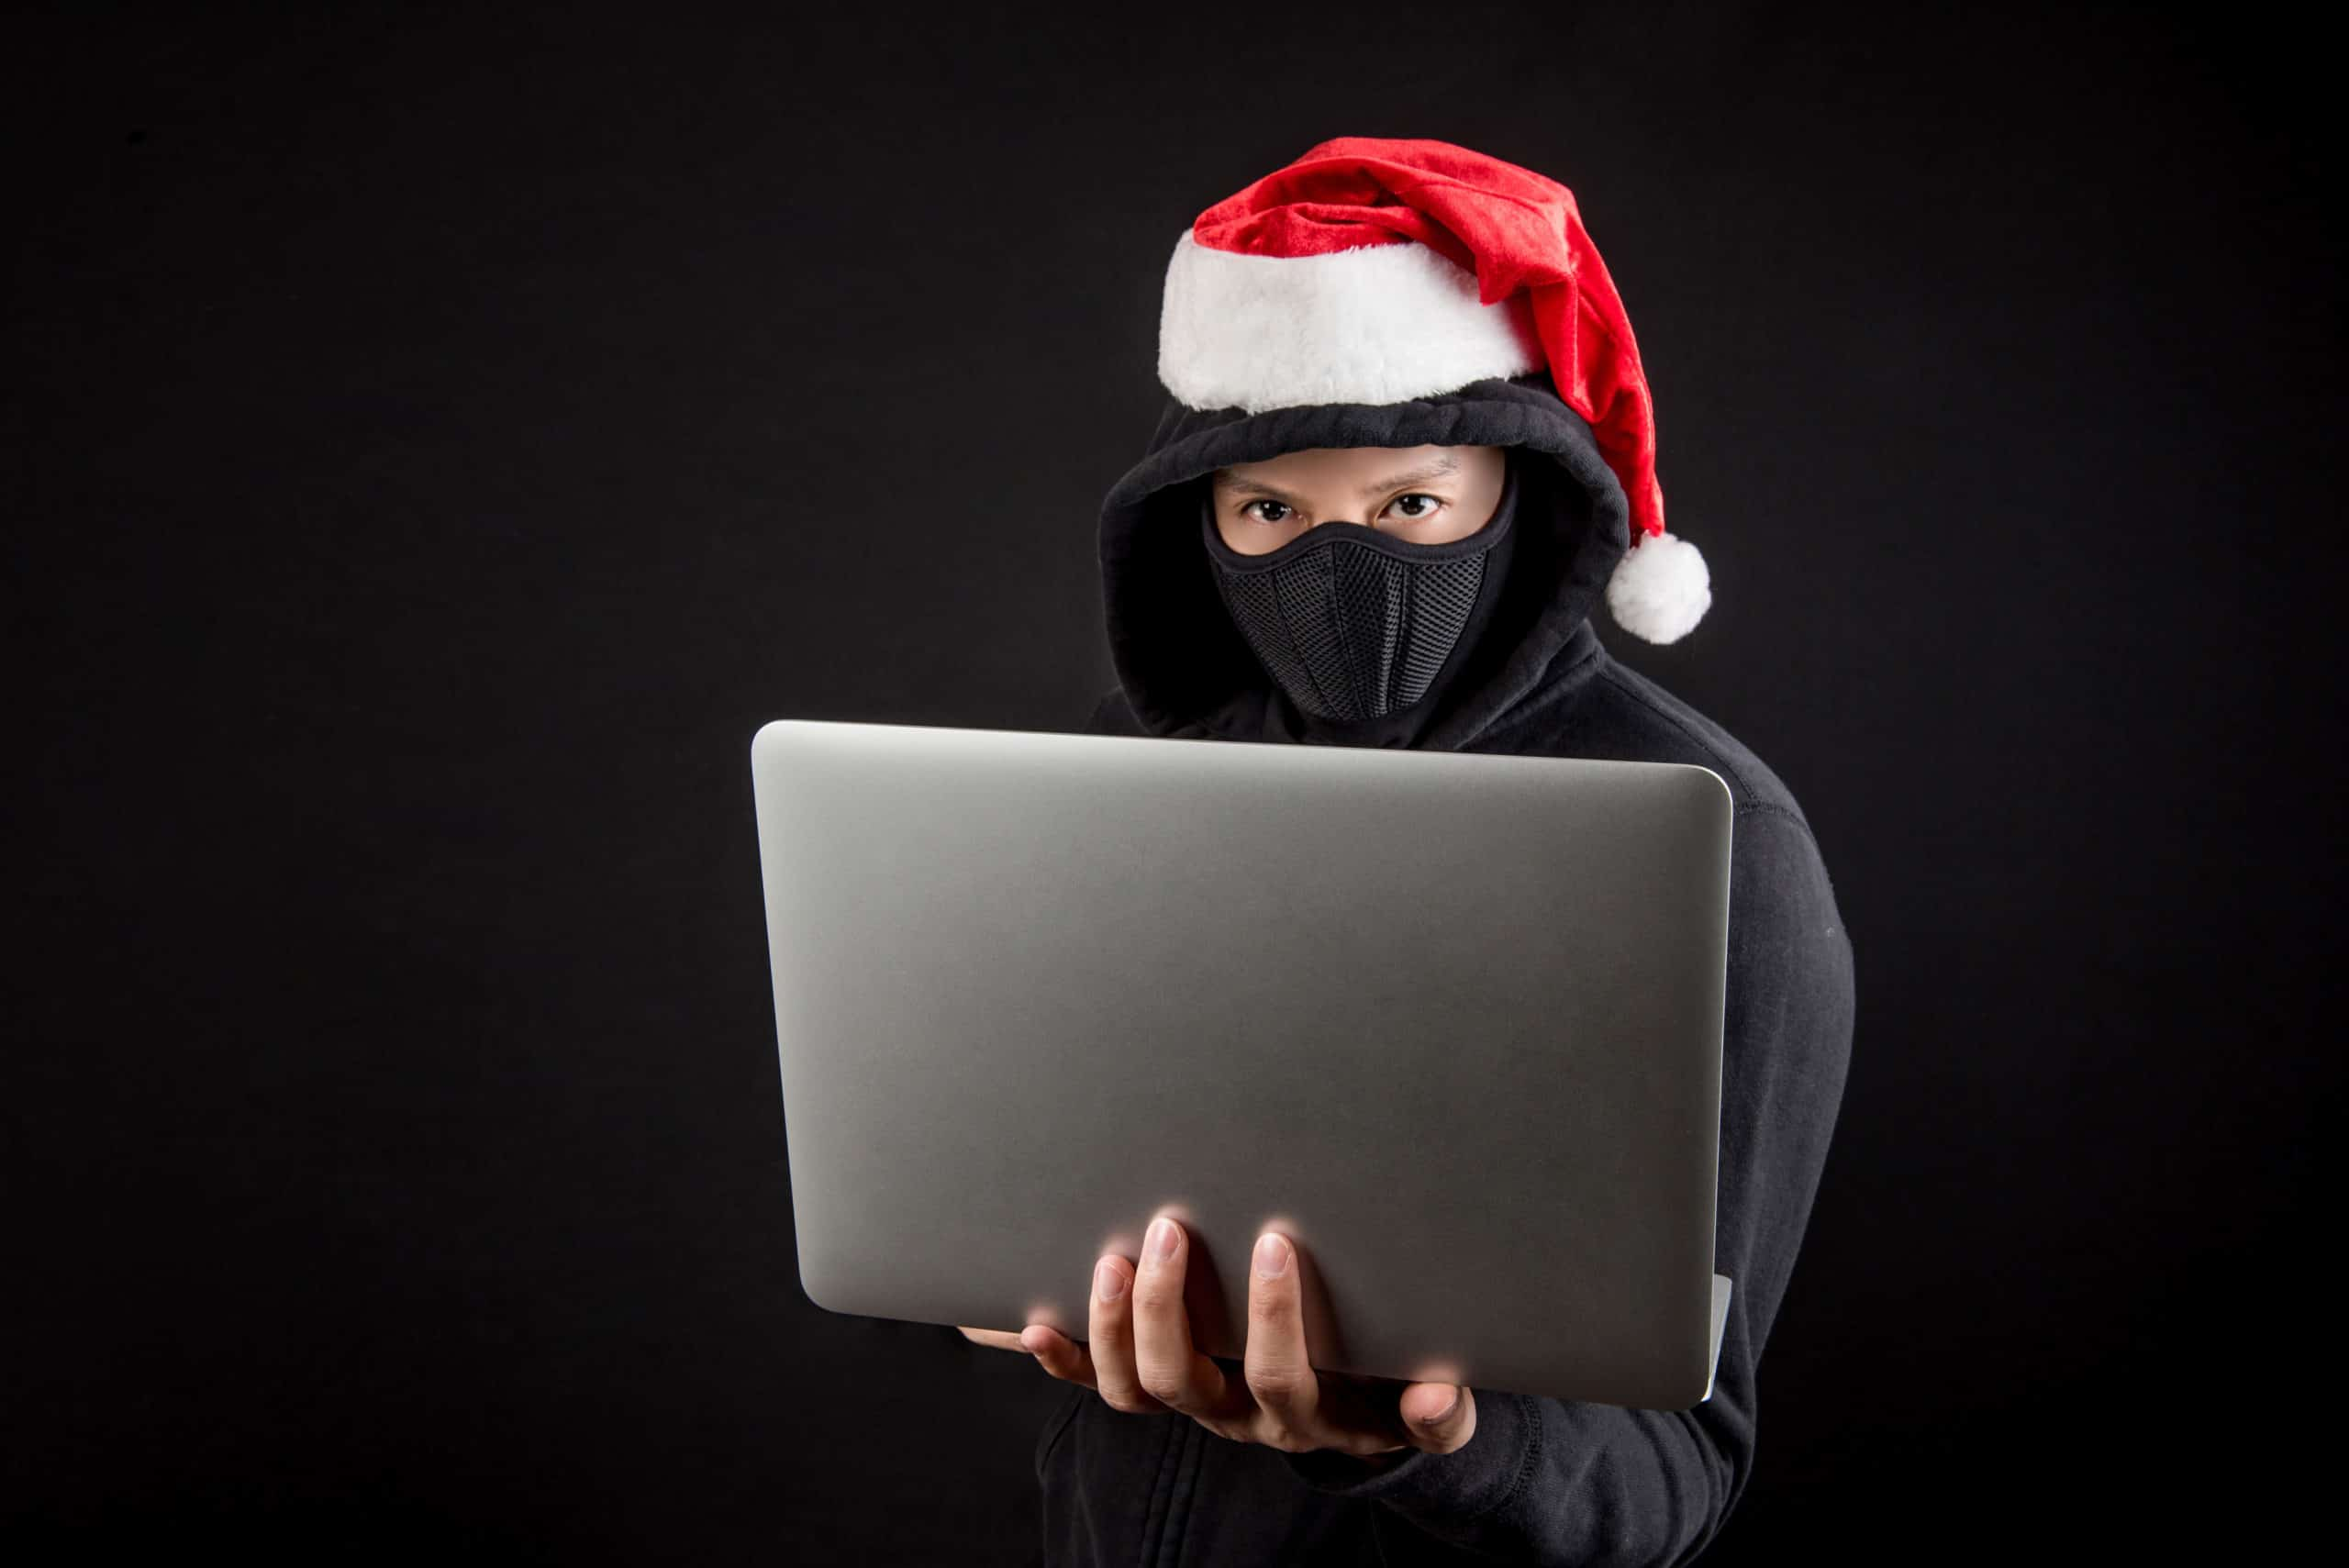 Don't Get Wrapped Up in These Virtual Holiday Fair Scams